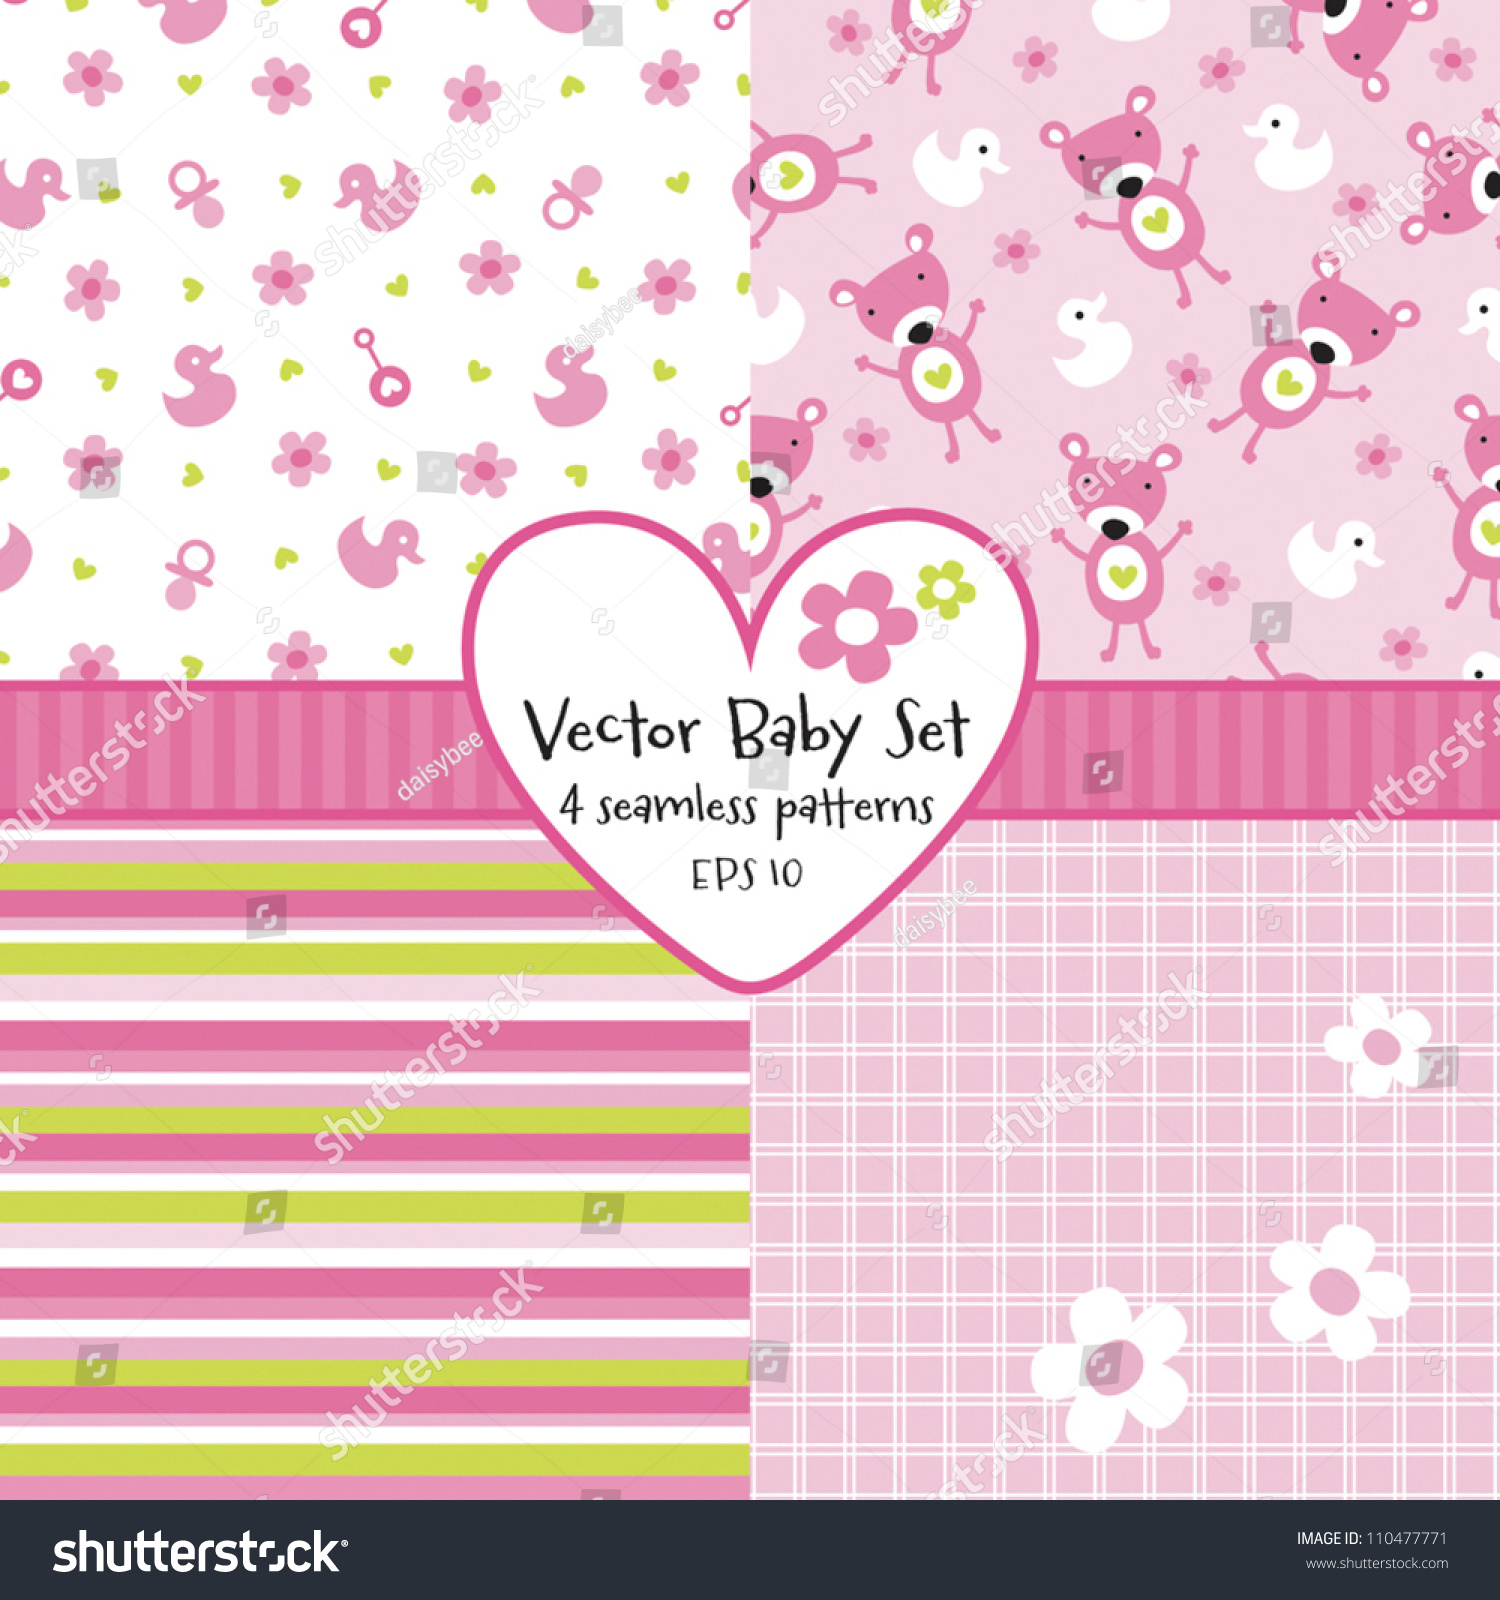 Vector set 4 seamless baby girl stock vector 110477771 shutterstock vector set of 4 seamless baby girl background patterns great for greeting cards baby kristyandbryce Image collections